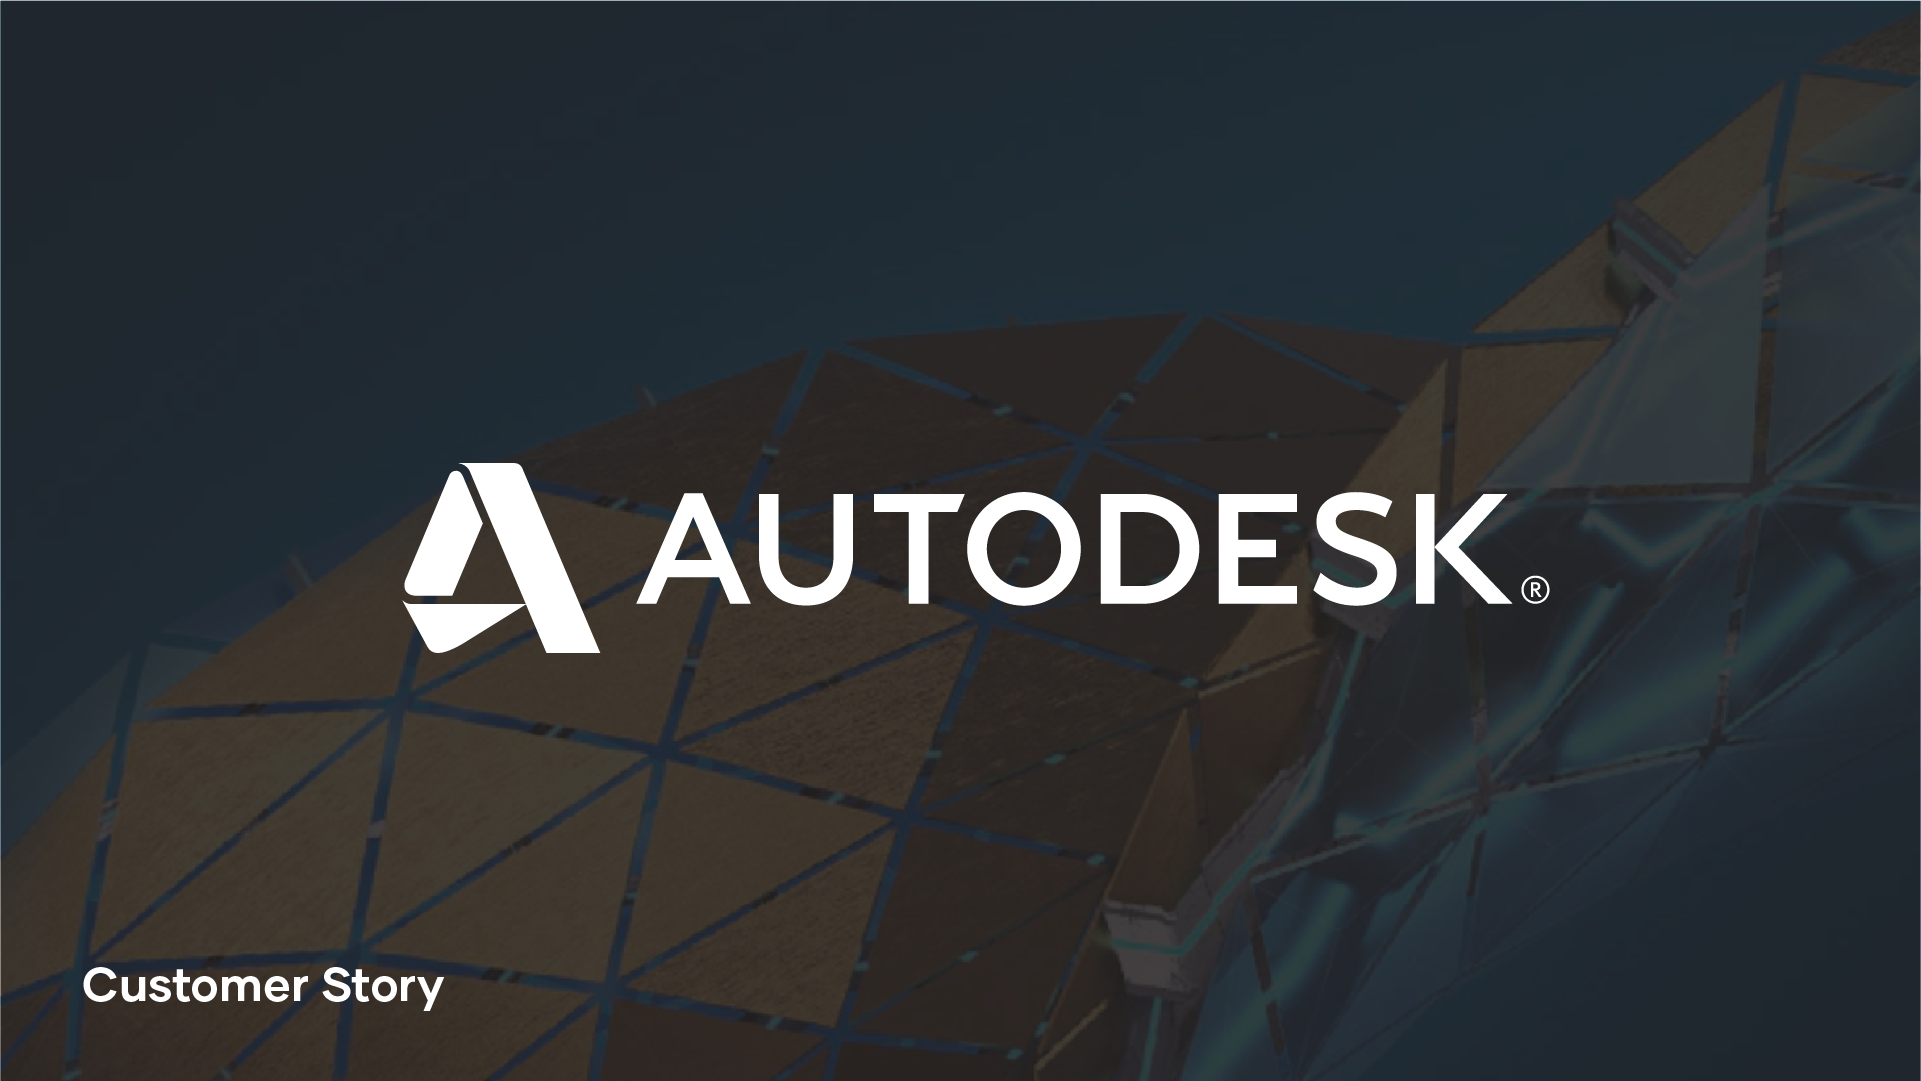 How Autodesk Uses HashiCorp Nomad to Modernize the Workflow of Making Things